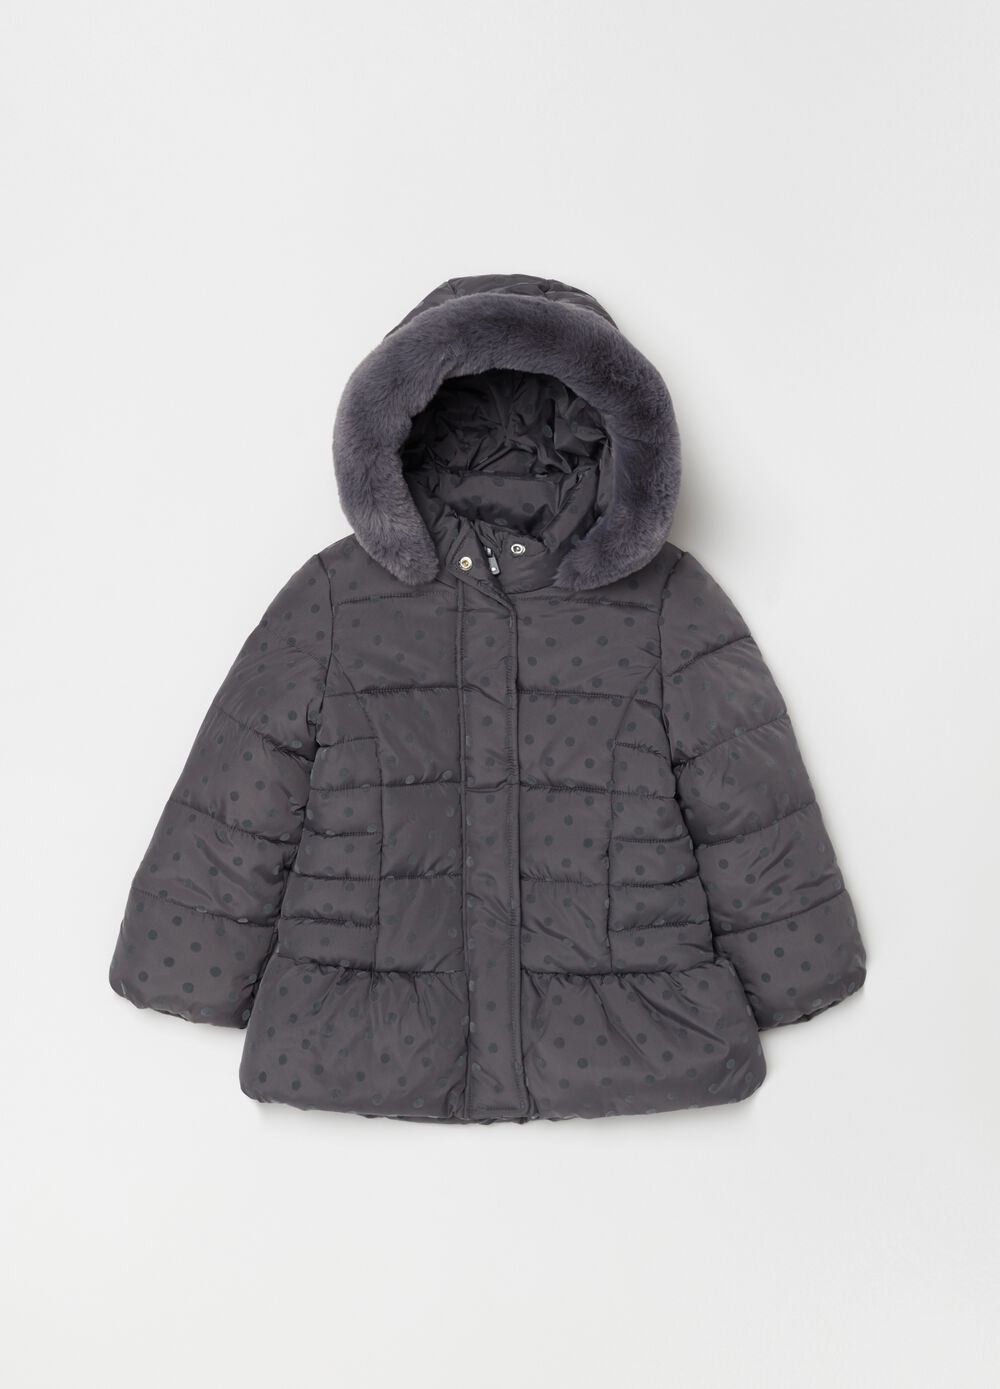 Padded and quilted jacket with polka dots